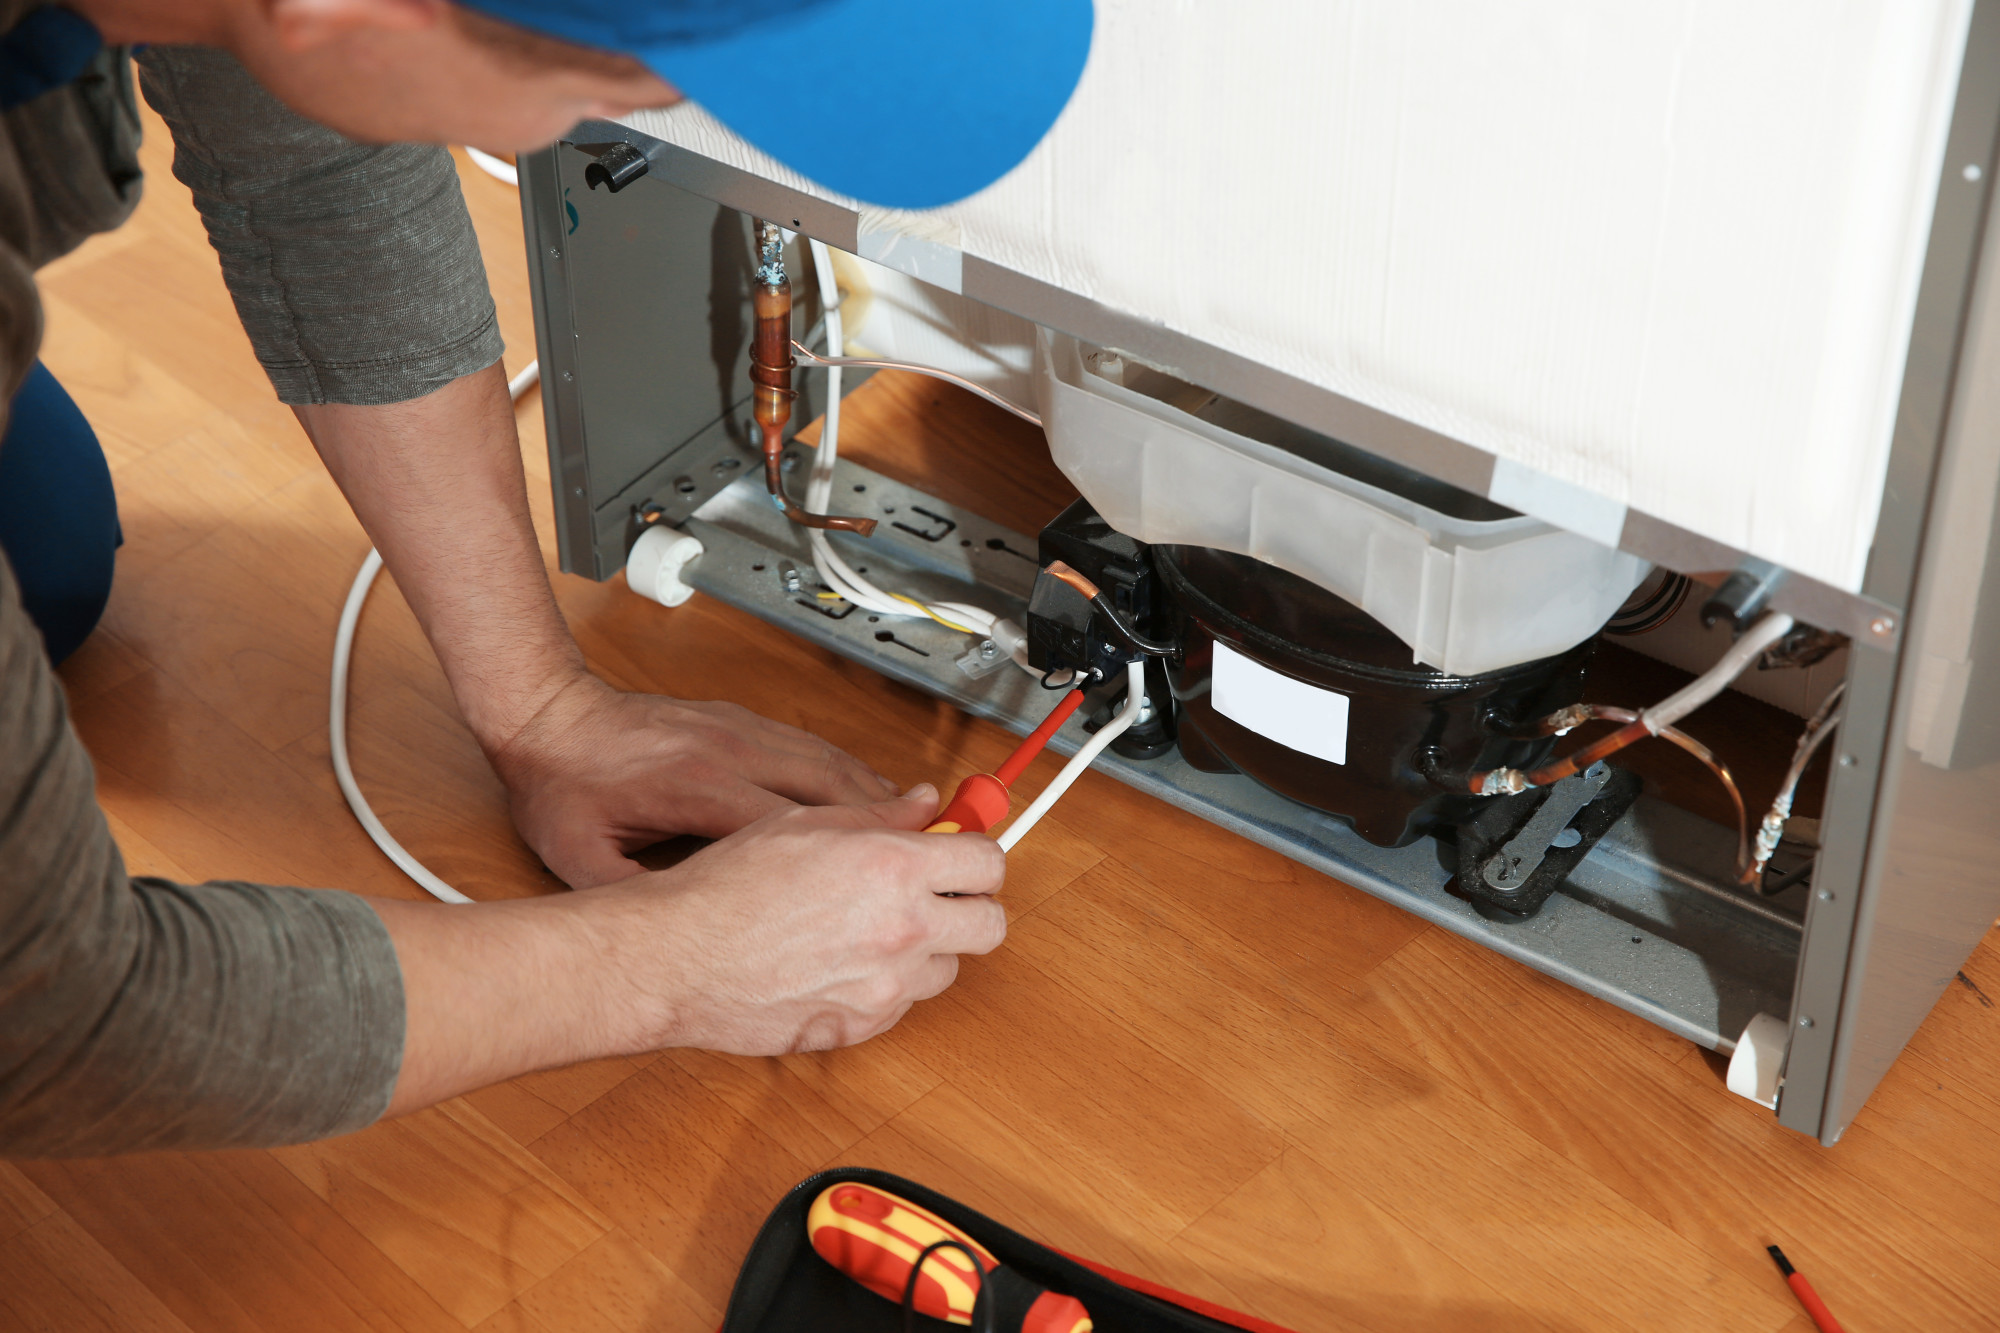 Broken Refrigerator? When to Repair, When to Replace